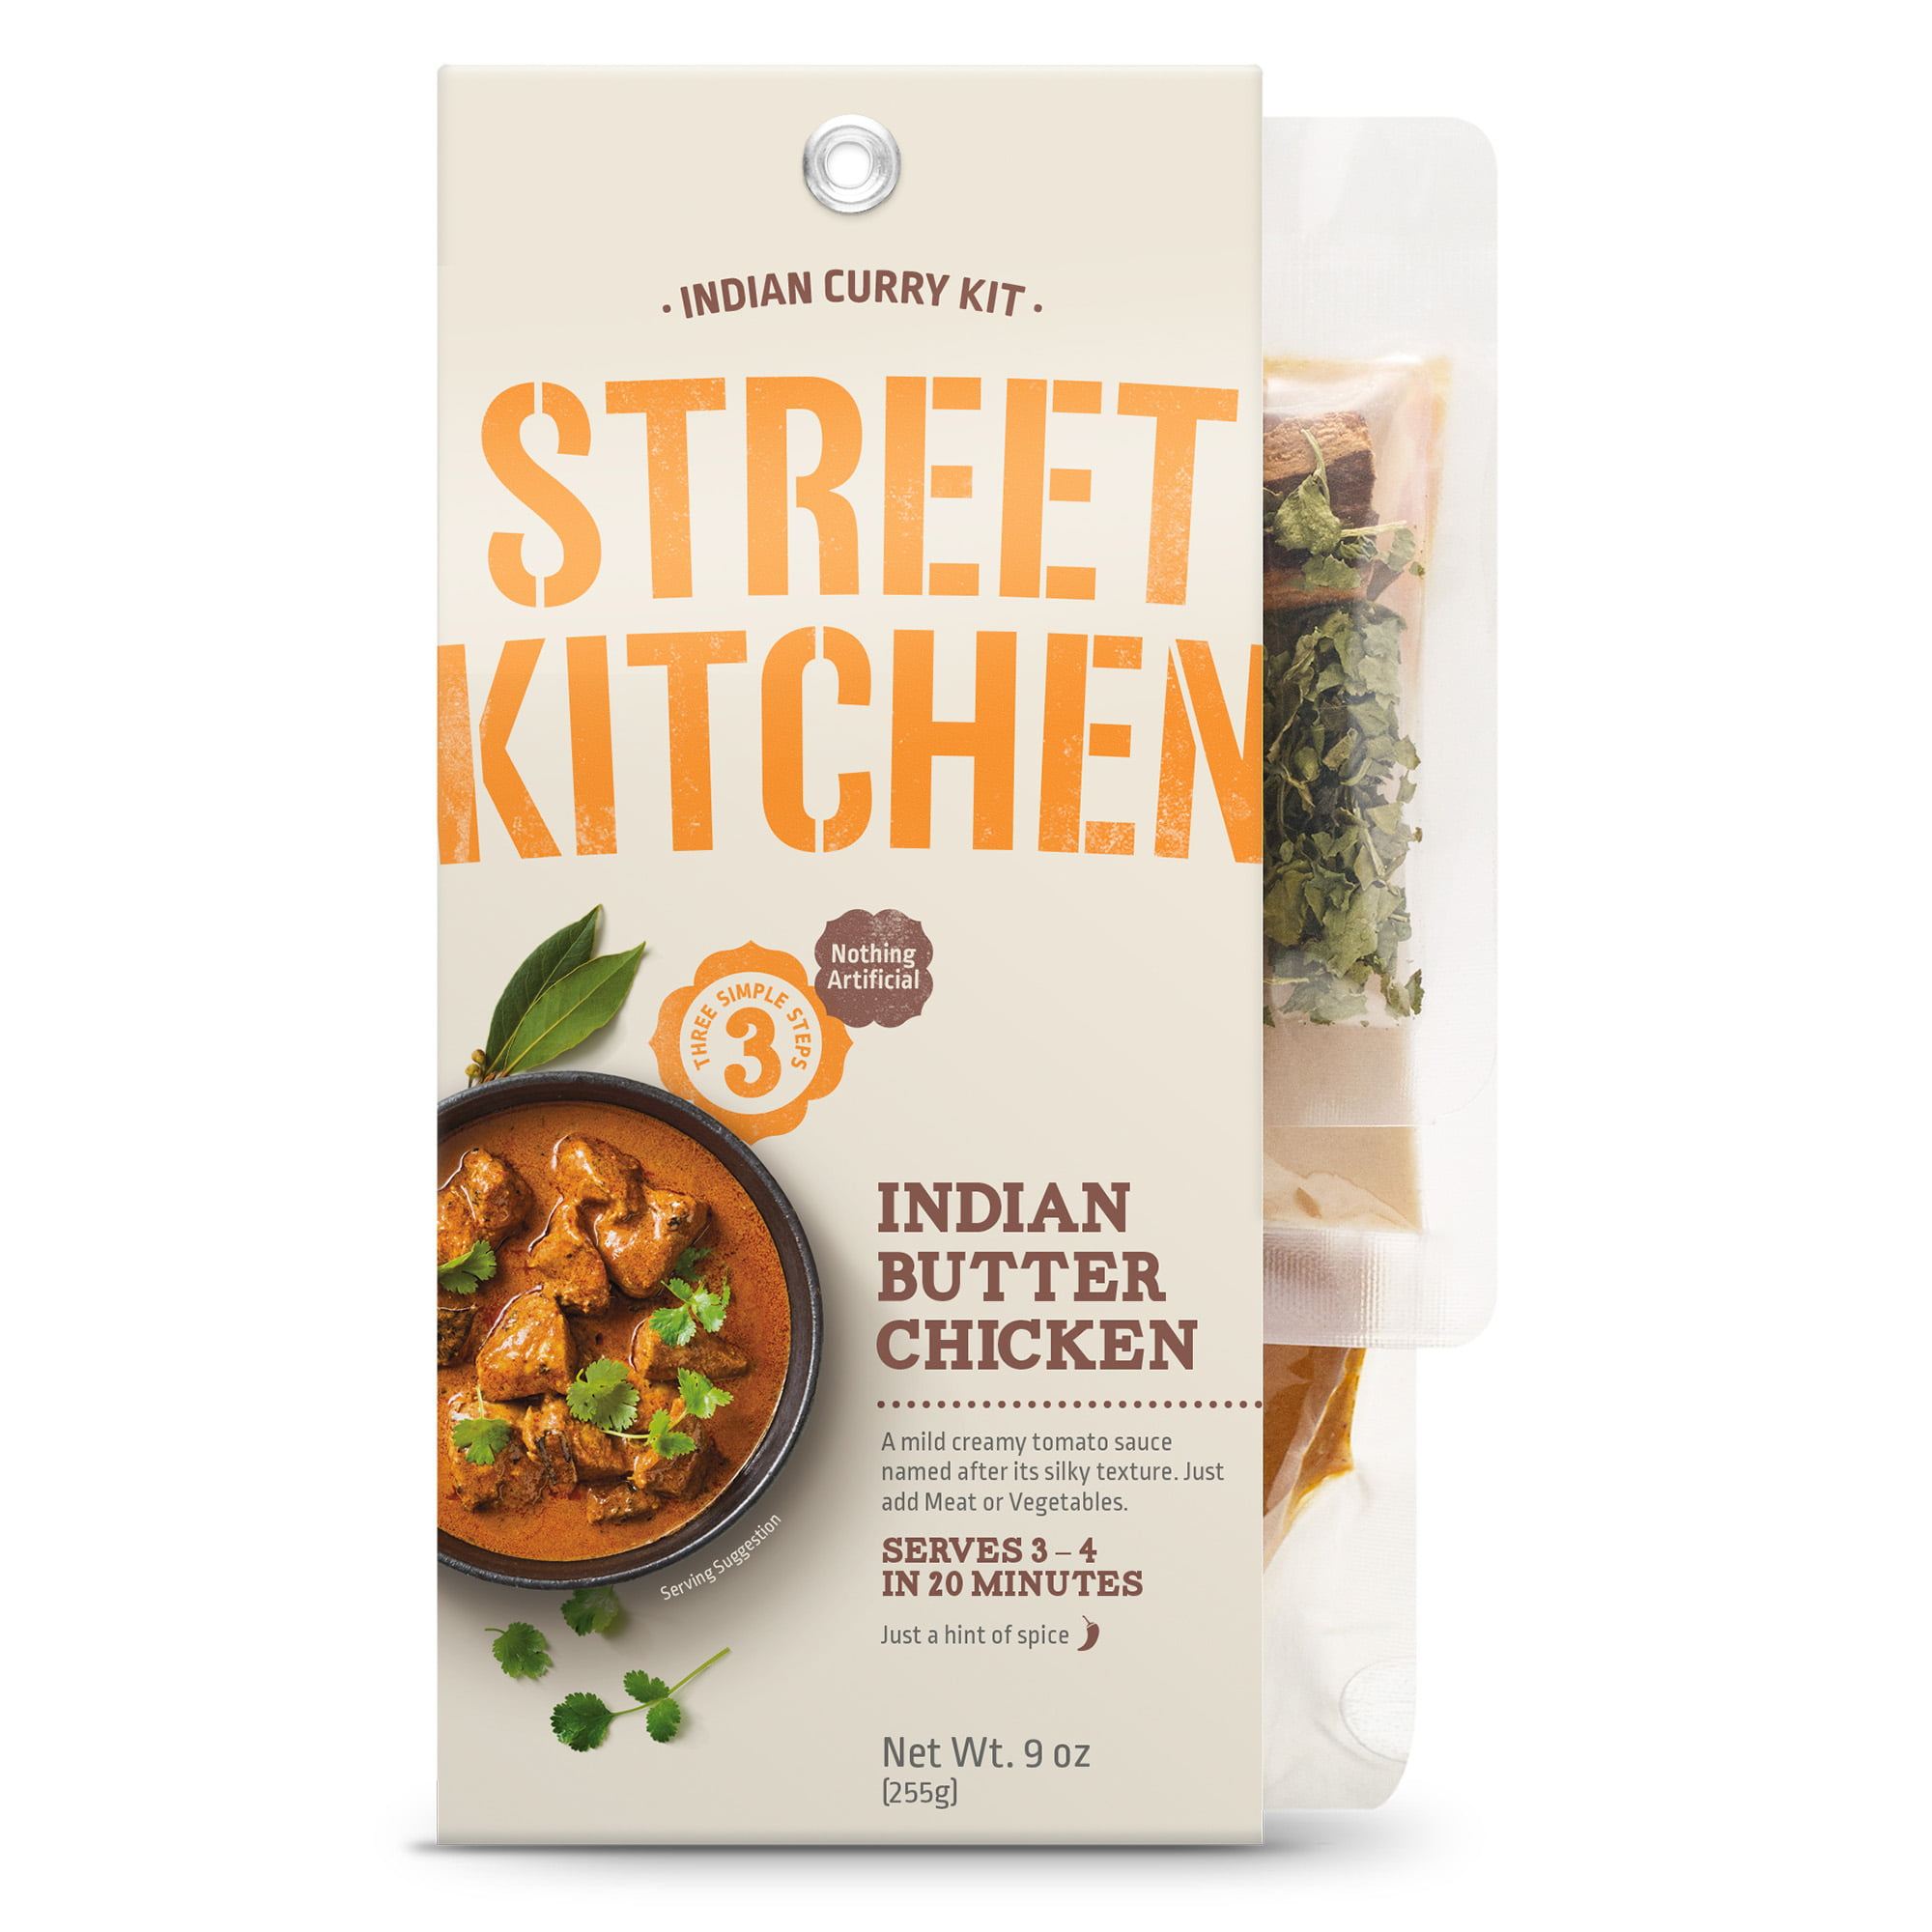 Street Kitchen Indian Butter Chicken Indian Scratch Kit 9 Oz Walmart Com Walmart Com